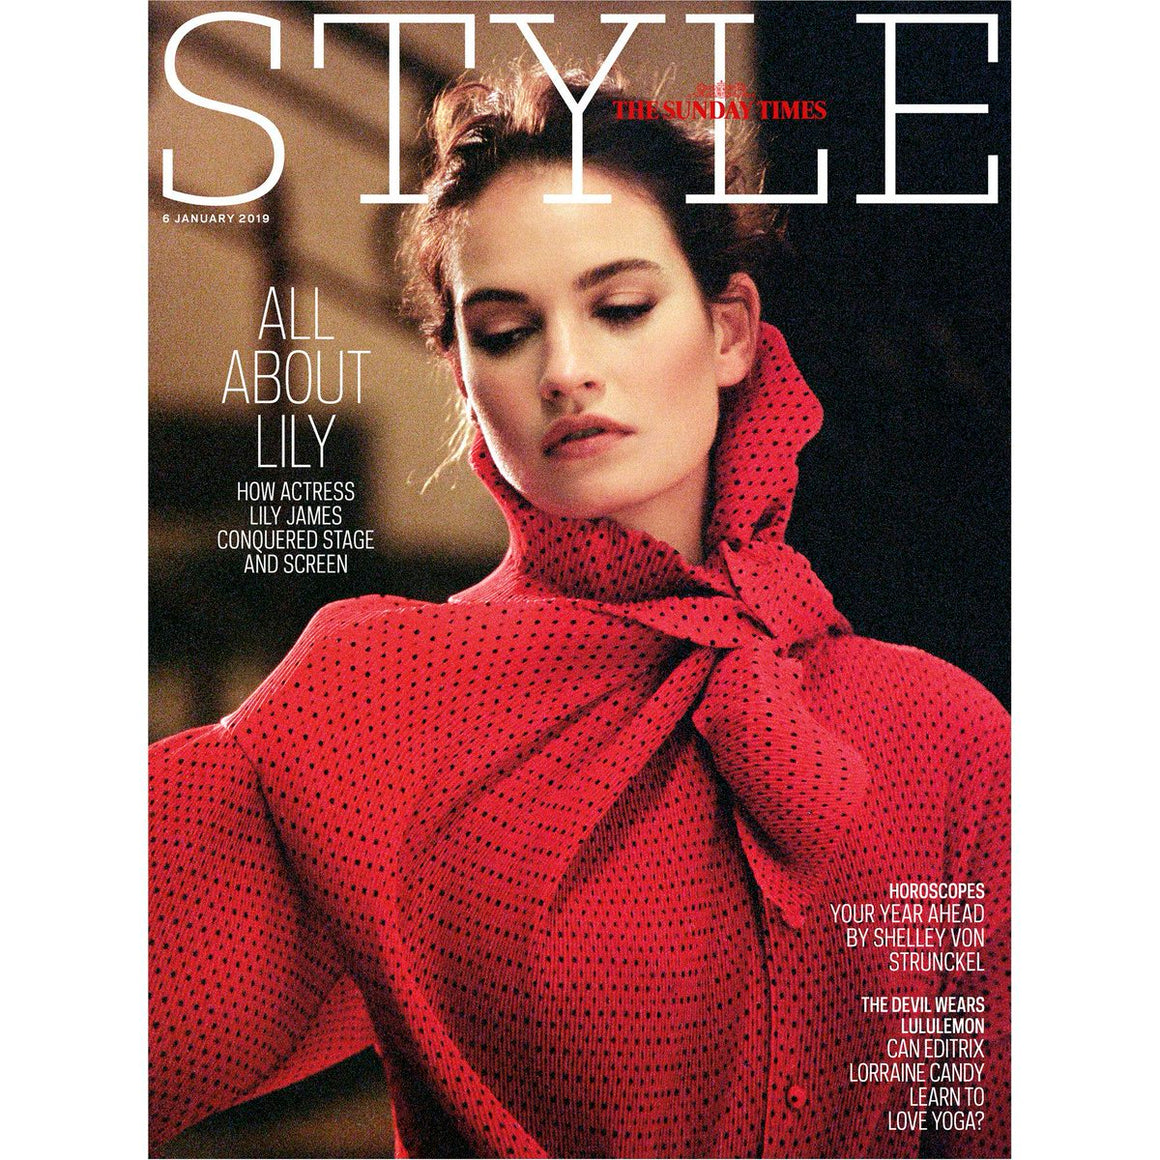 Sunday Times Style Magazine 6th January 2019 Lily James Cover